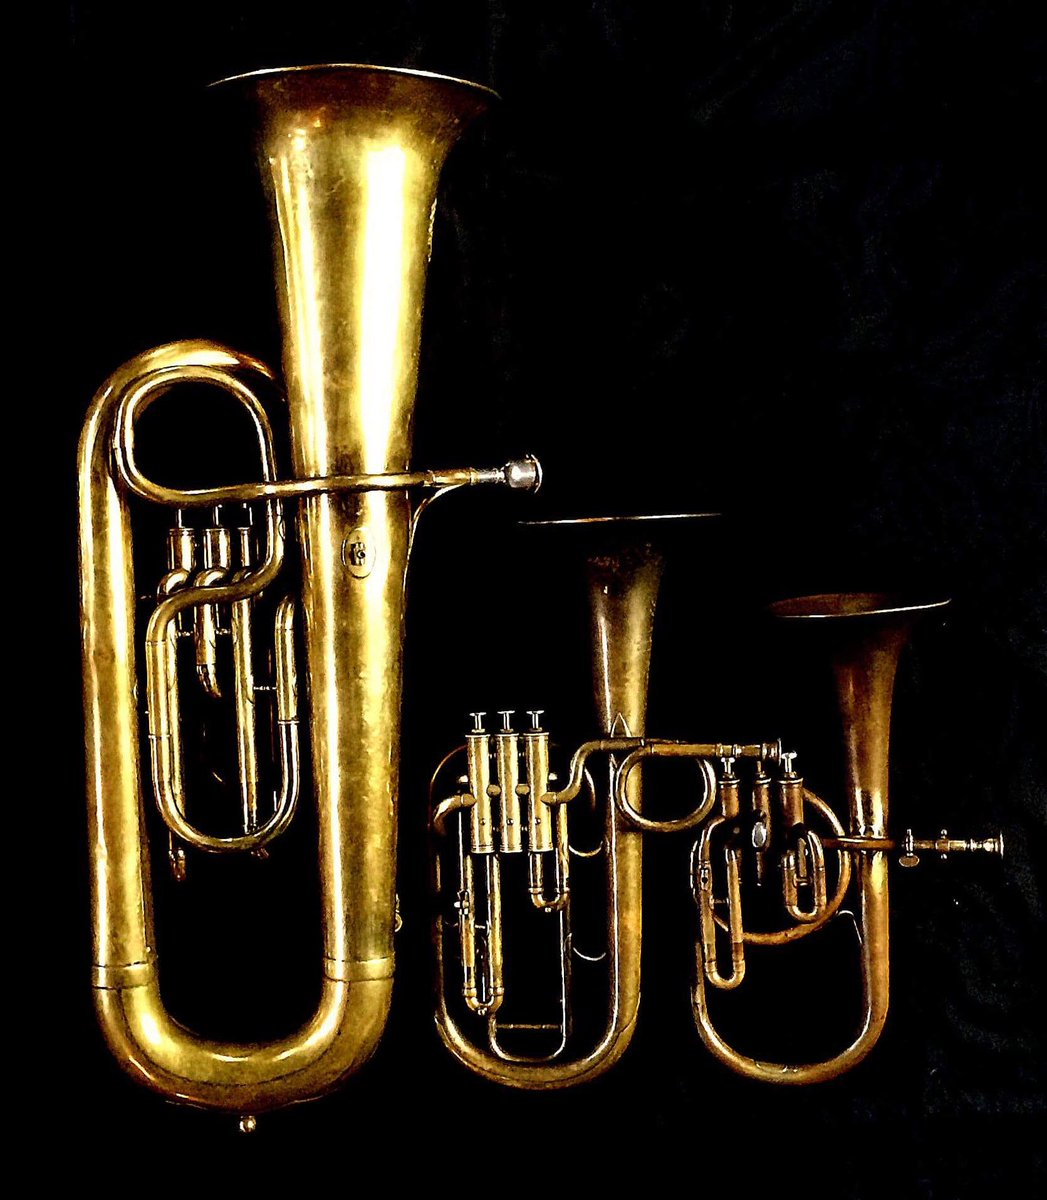 Left to Right:  Contrabass saxhorn     in E flat by E. Daniel (7167, Marseille, c. 1850),   Tenor saxhorn in F/E flat/D   by Antoine Courtois (Paris, c. 1855), sold by Arthur Chappell (London) ,  Contralto saxhorn in B-flat   by J. Grass (32 Rue des Ponts de Comines, Lille, est. 1868.